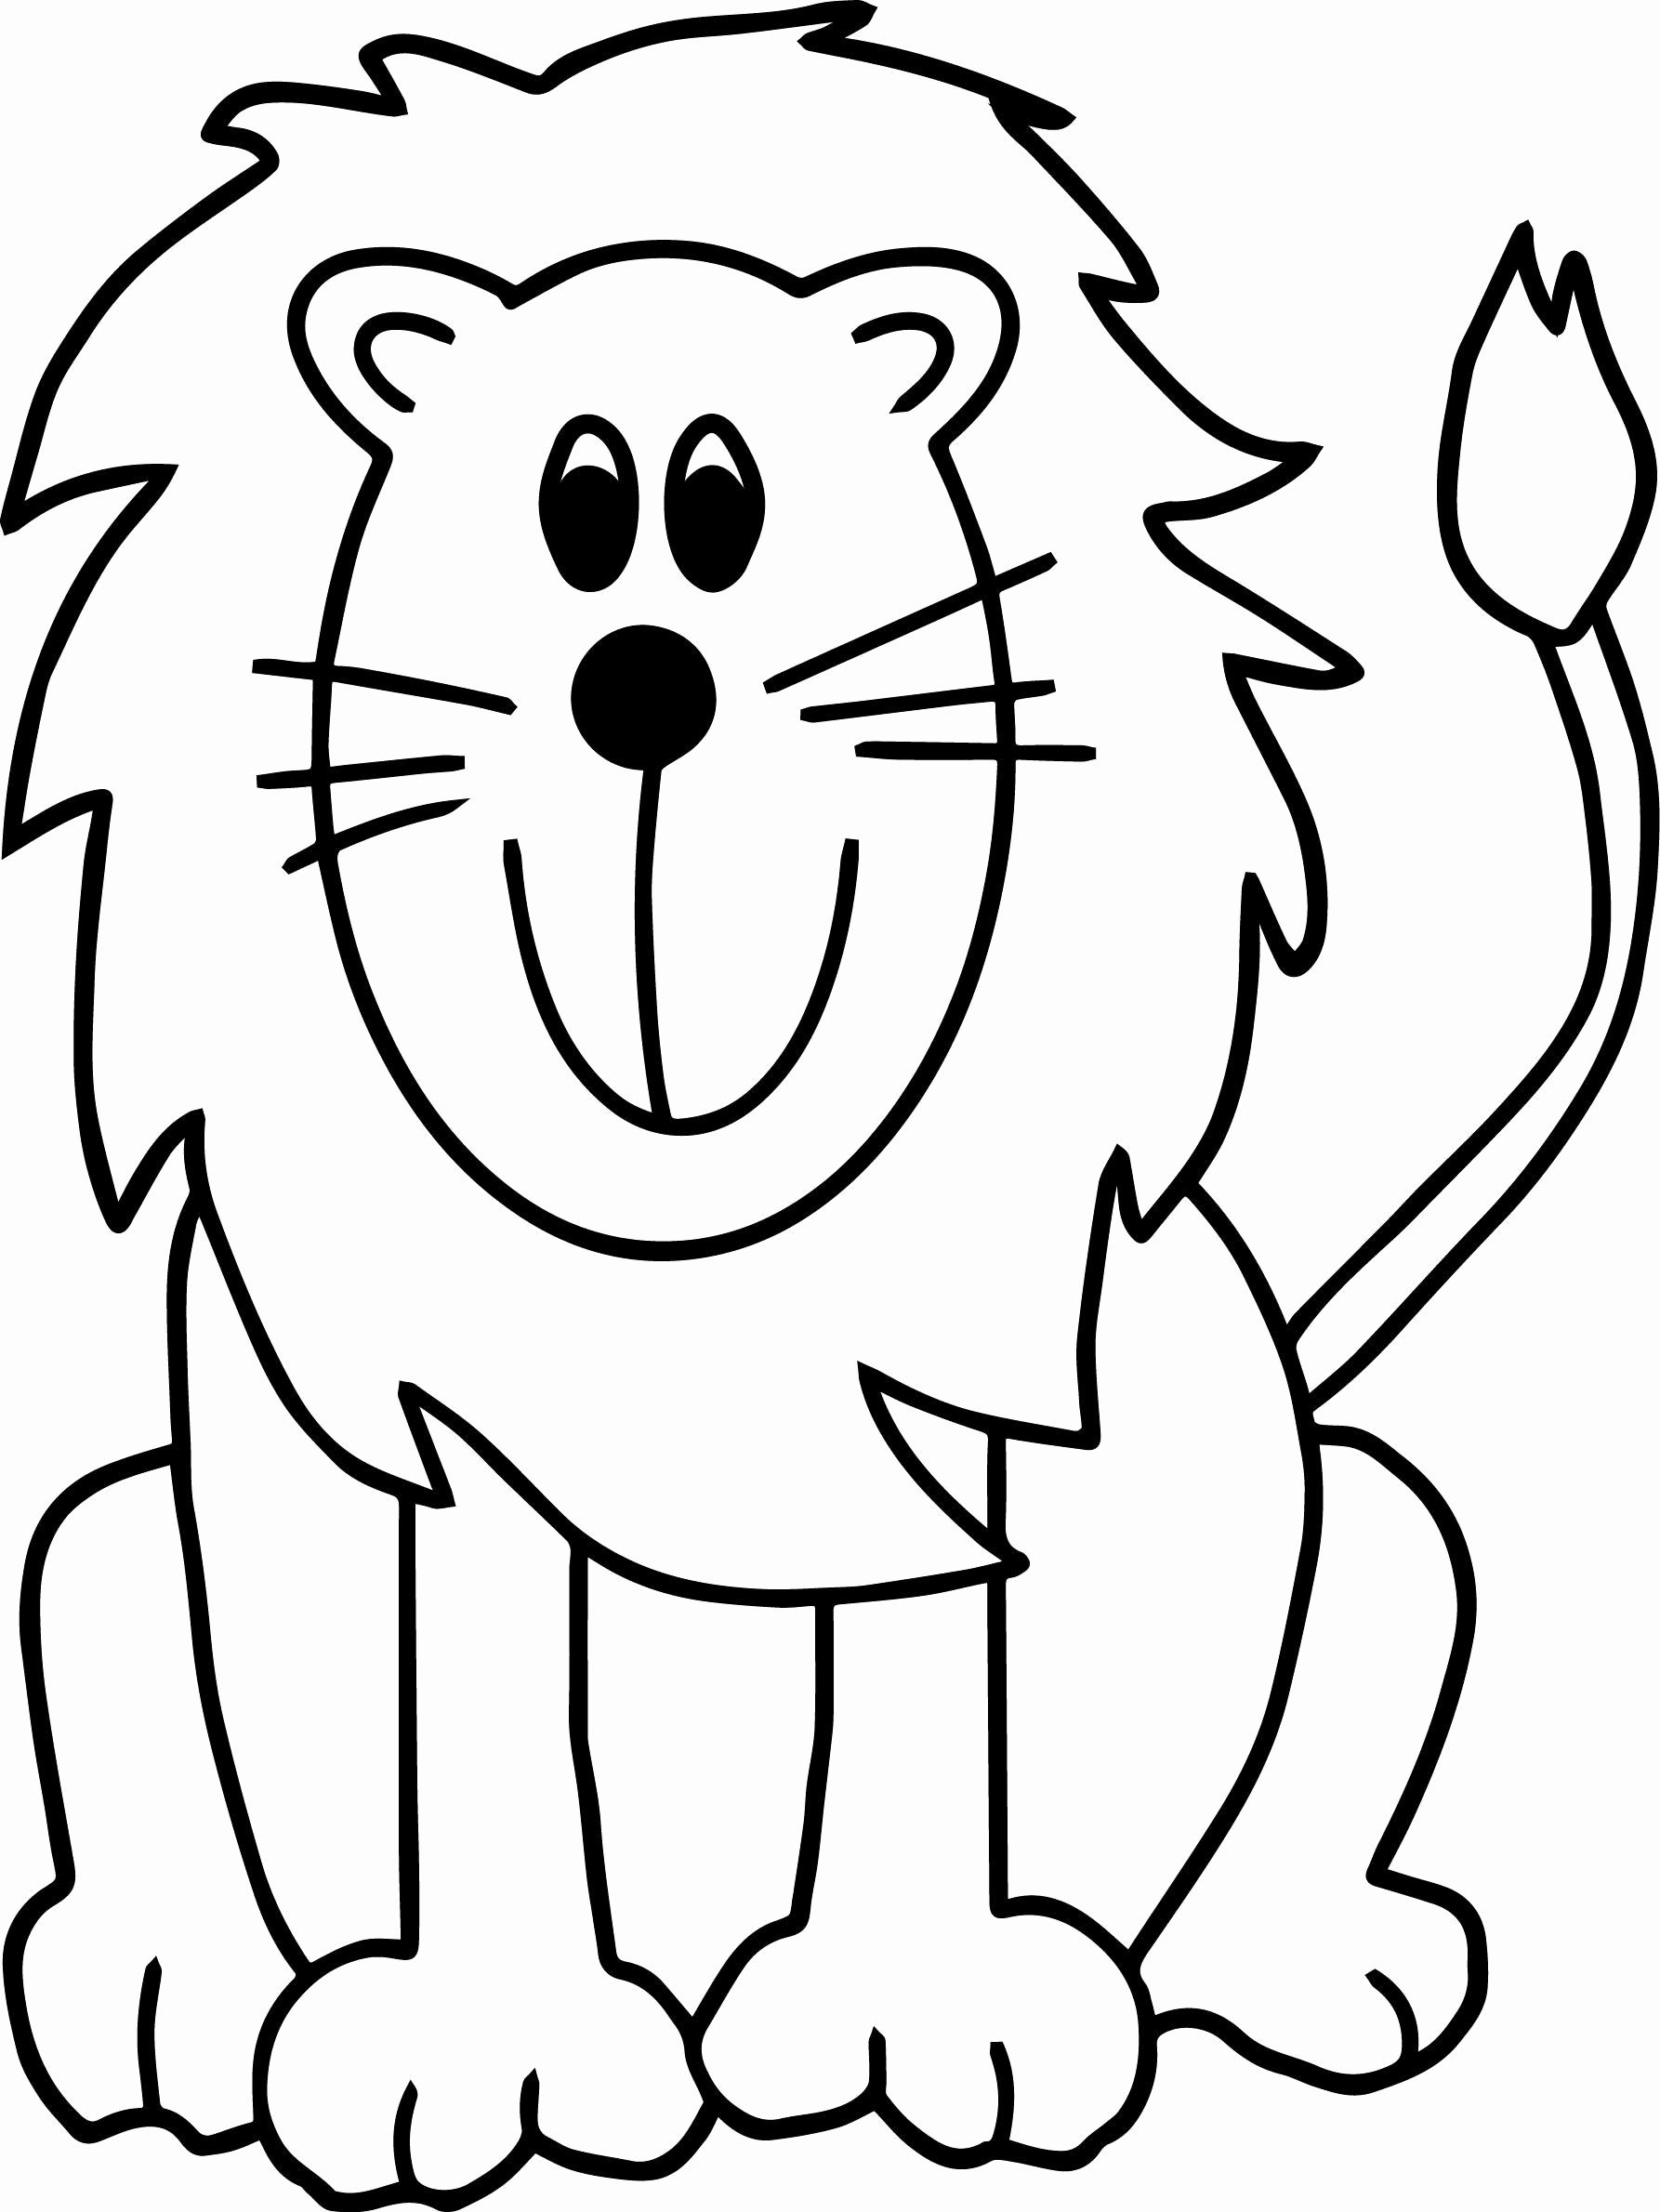 Zoo Animals Coloring Sheet Lovely Zoo Animals Coloring Pages In 2020 In 2020 Zoo Animal Coloring Pages Lion Coloring Pages Zoo Coloring Pages